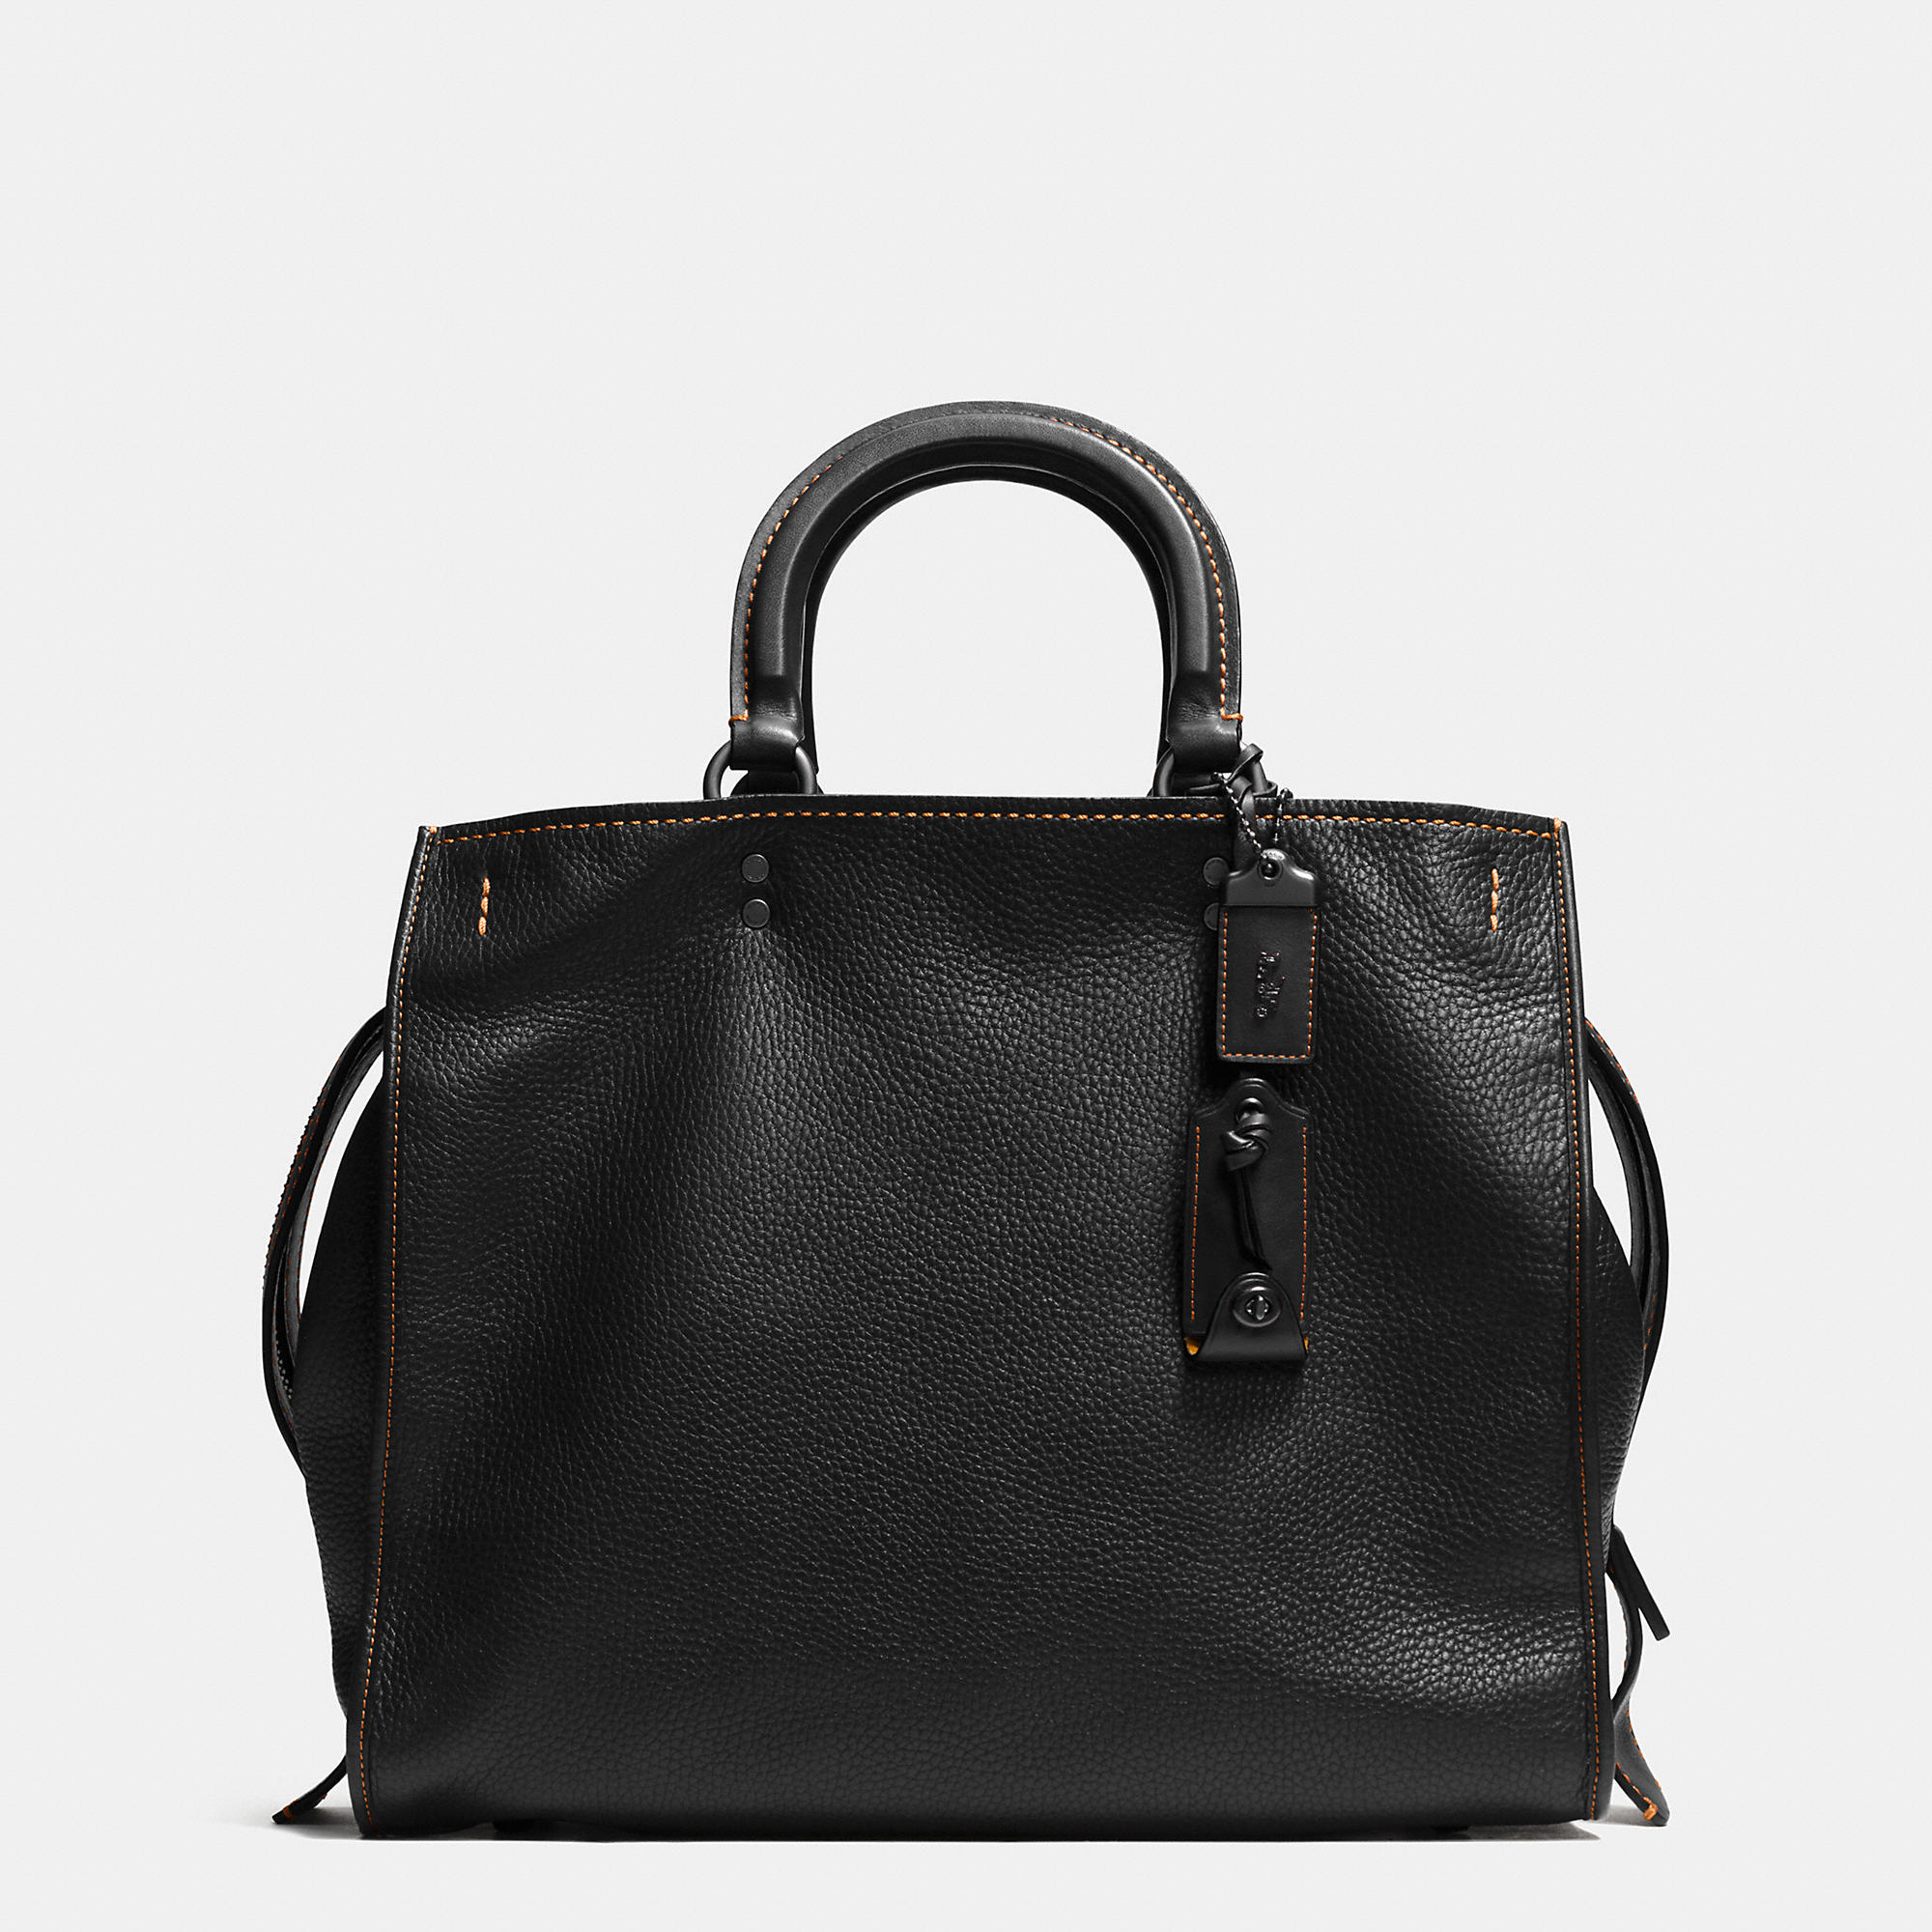 Coach Rogue Bag 36 In Glovetanned Pebble Leather